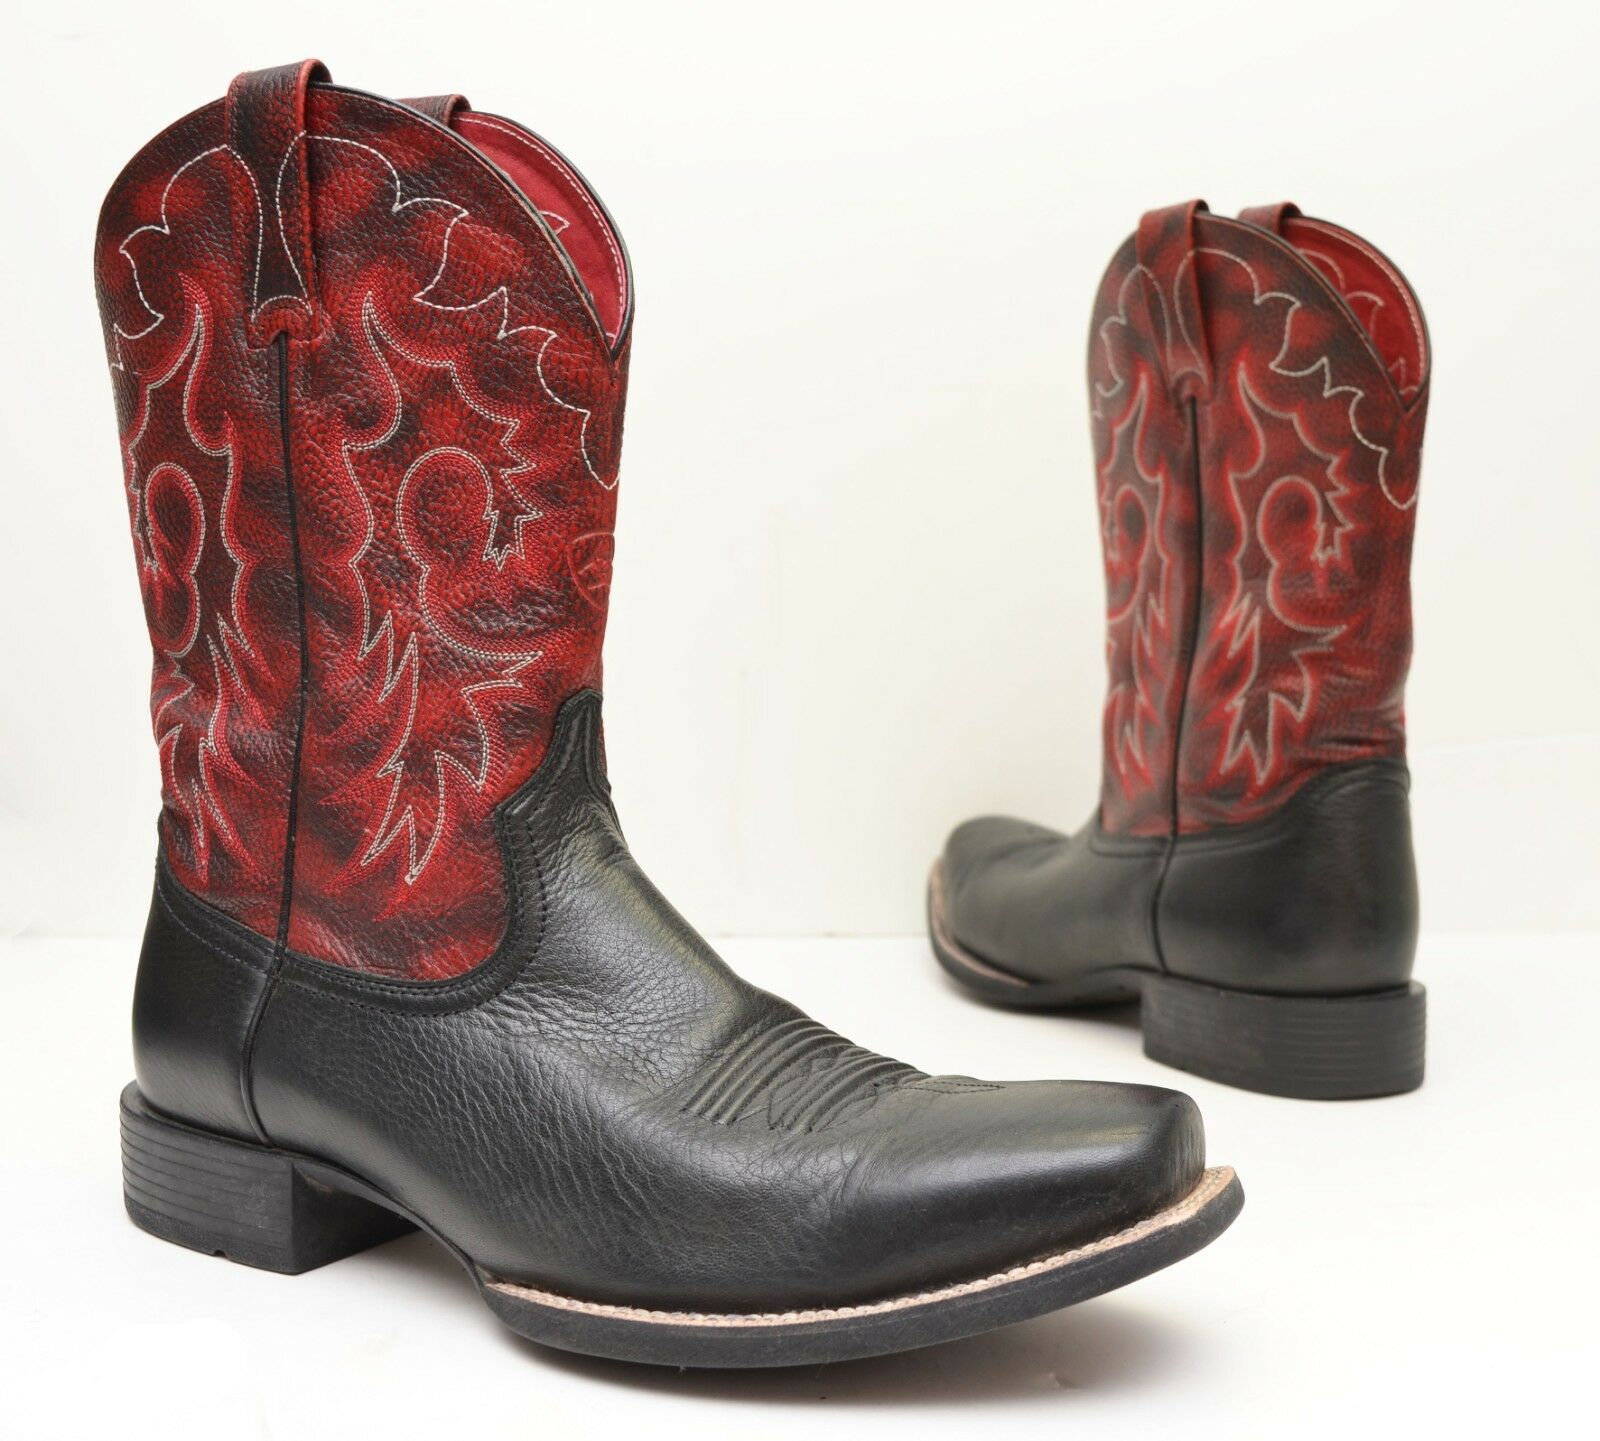 Ariat Heritage Square Toe Reinsmen Western Boots - Model 10009593 Sz 12